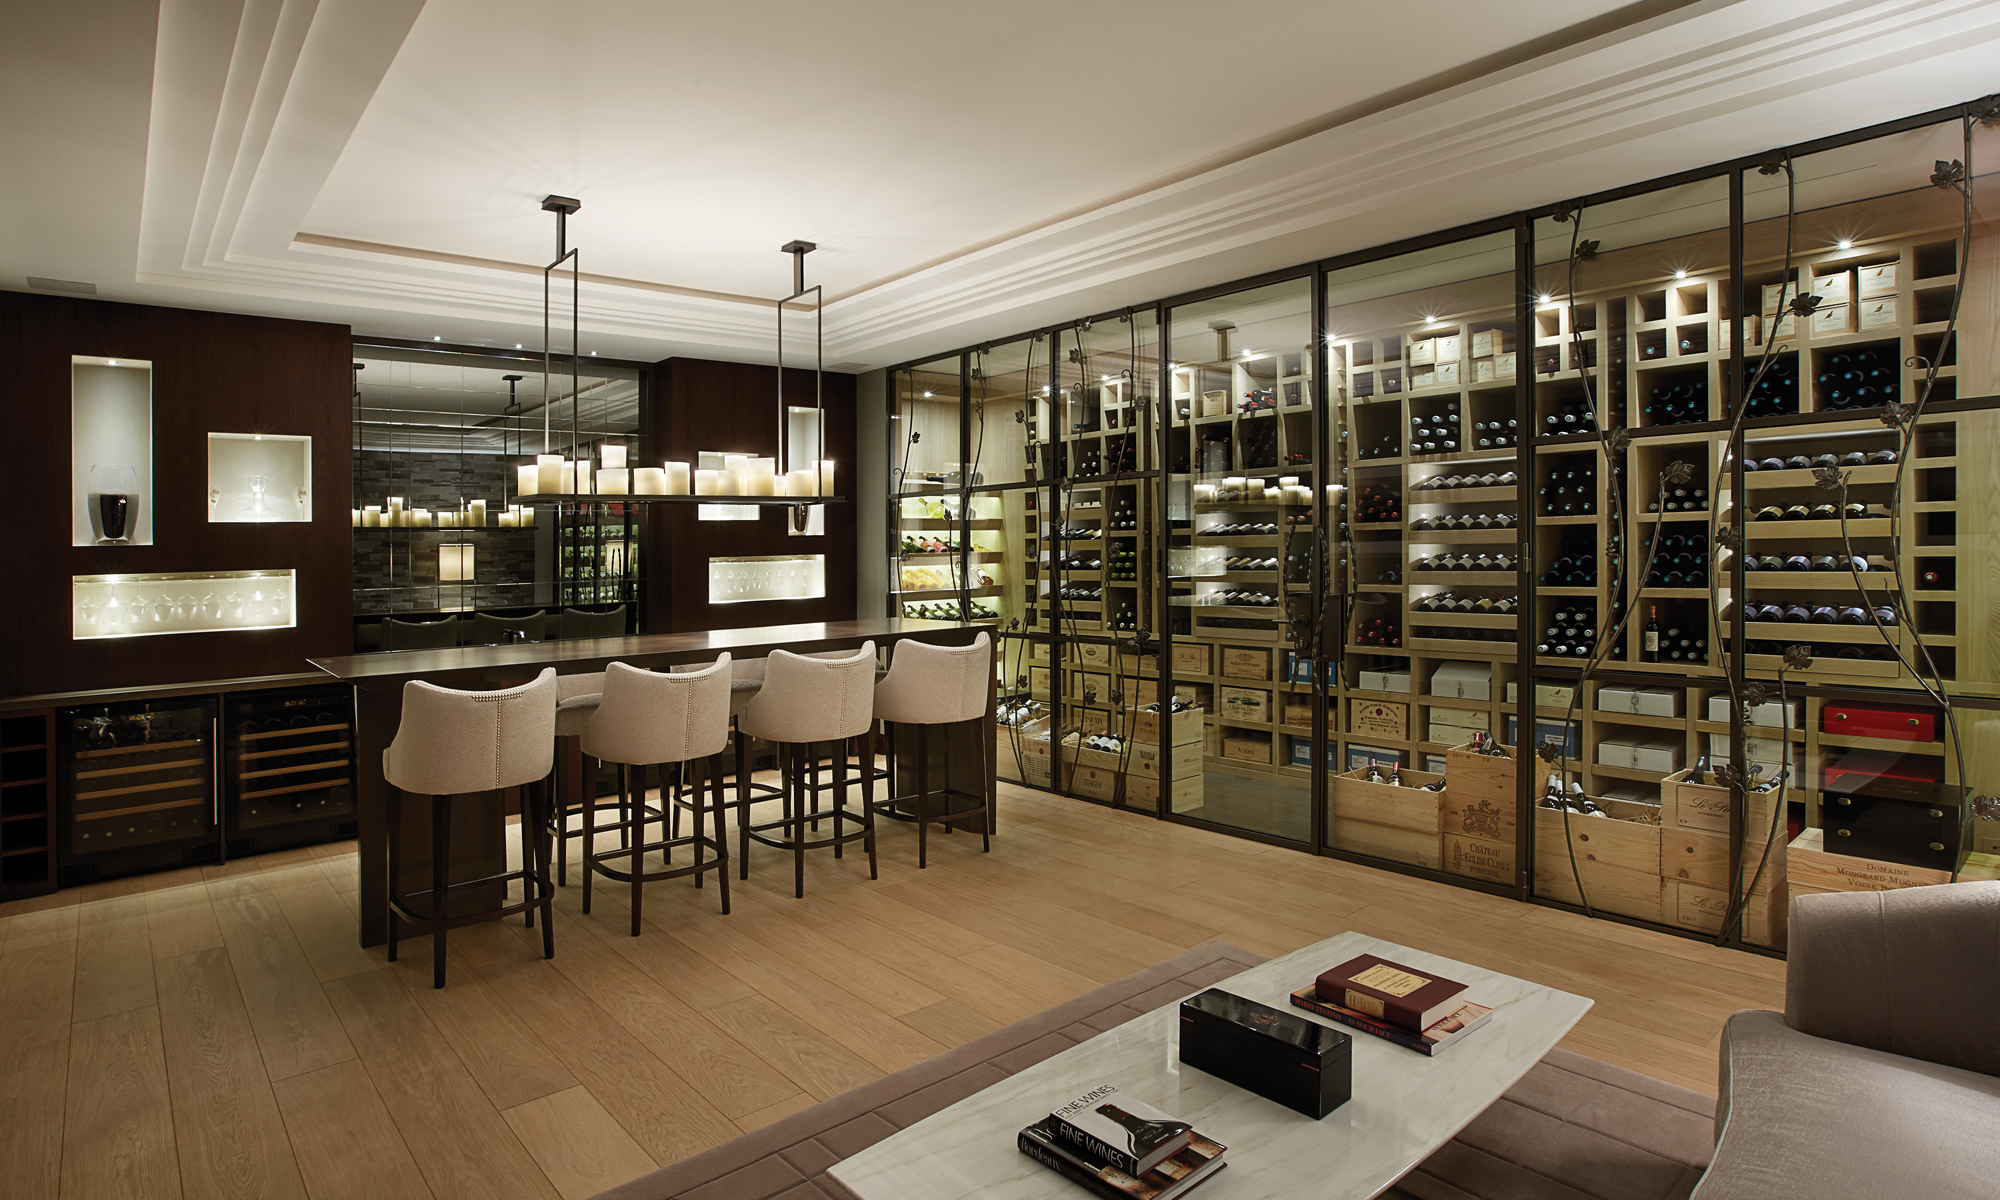 Enjoy your very own temperature controlled wine cellar and sommelier experience.